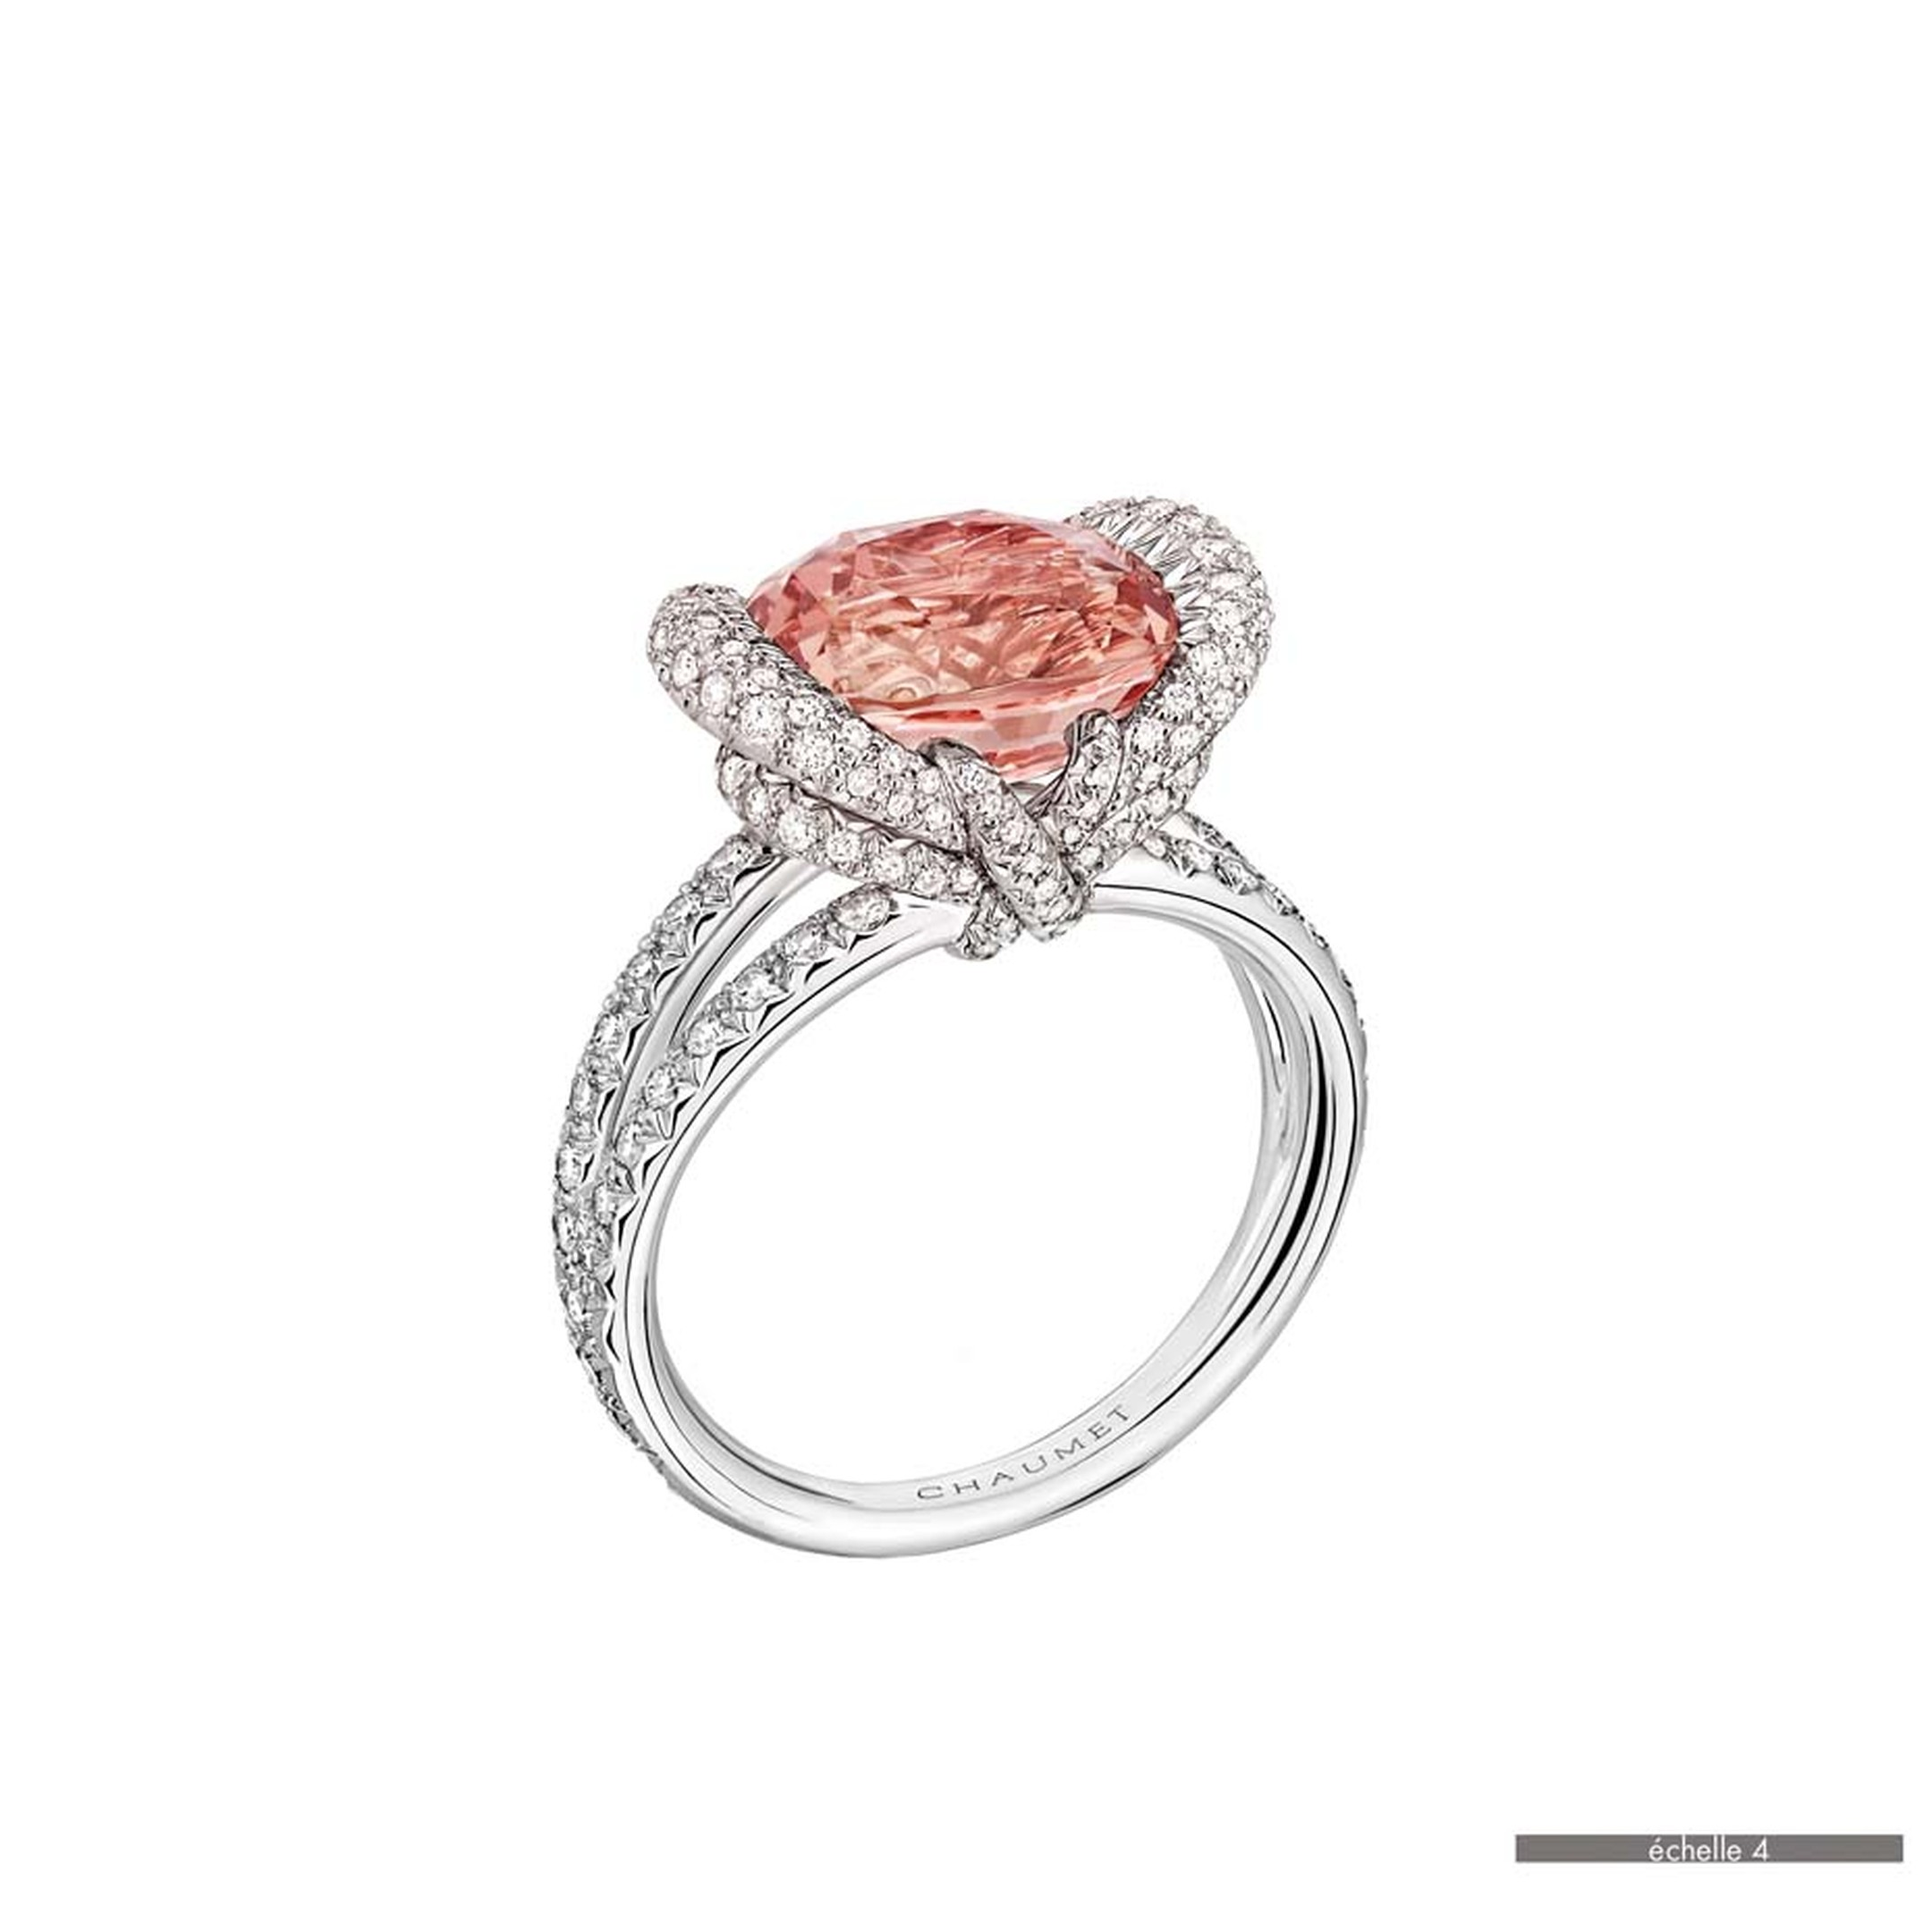 Chaumet Liens ring in white gold featuring 142 brilliant-cut diamonds and a padparadscha sapphire (5.29ct).